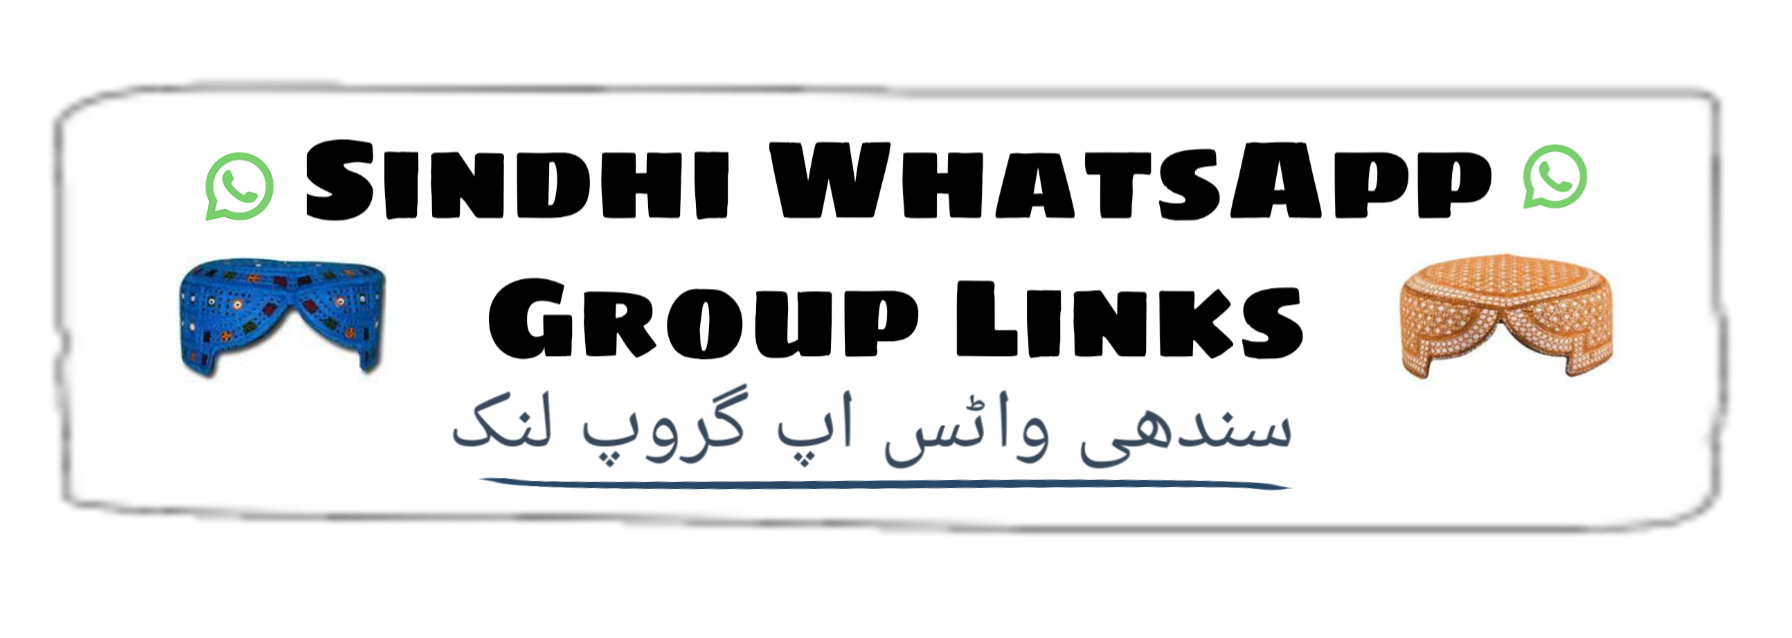 Join Latest Sindhi WhatsApp Group Links 2020